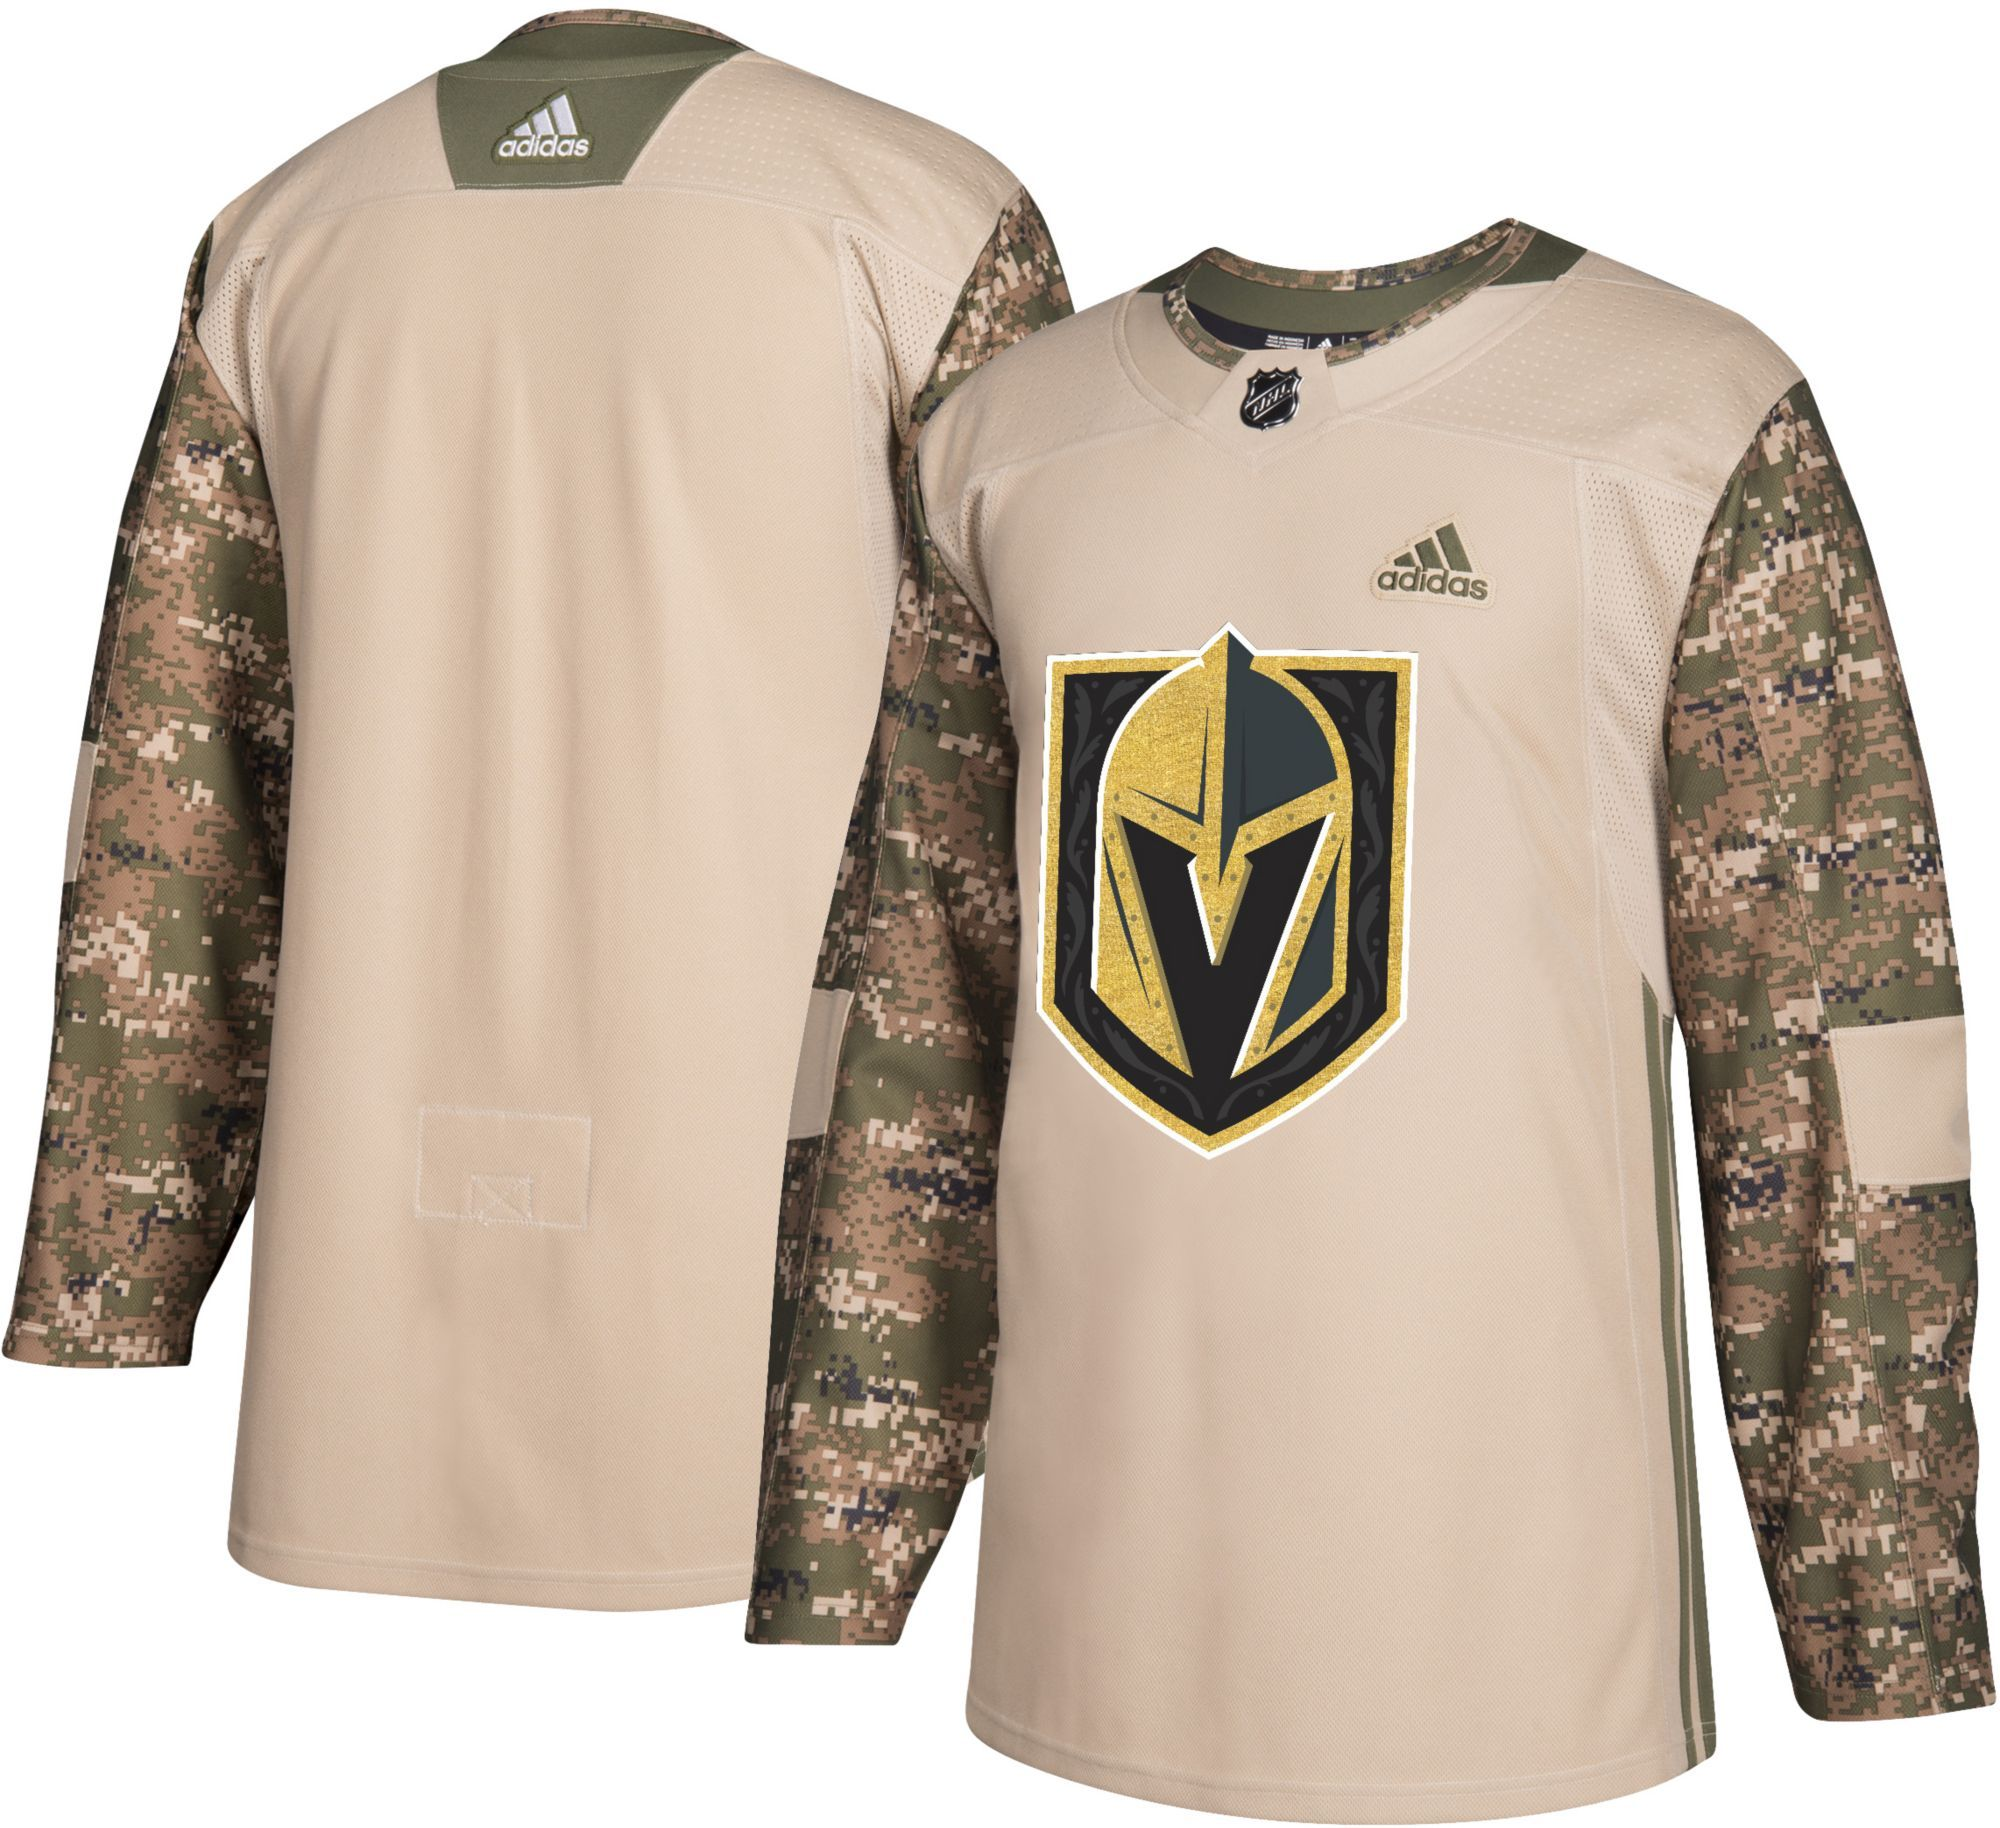 buy online 51308 16099 adidas Men's Vegas Golden Knights Camo Authentic Pro Jersey ...